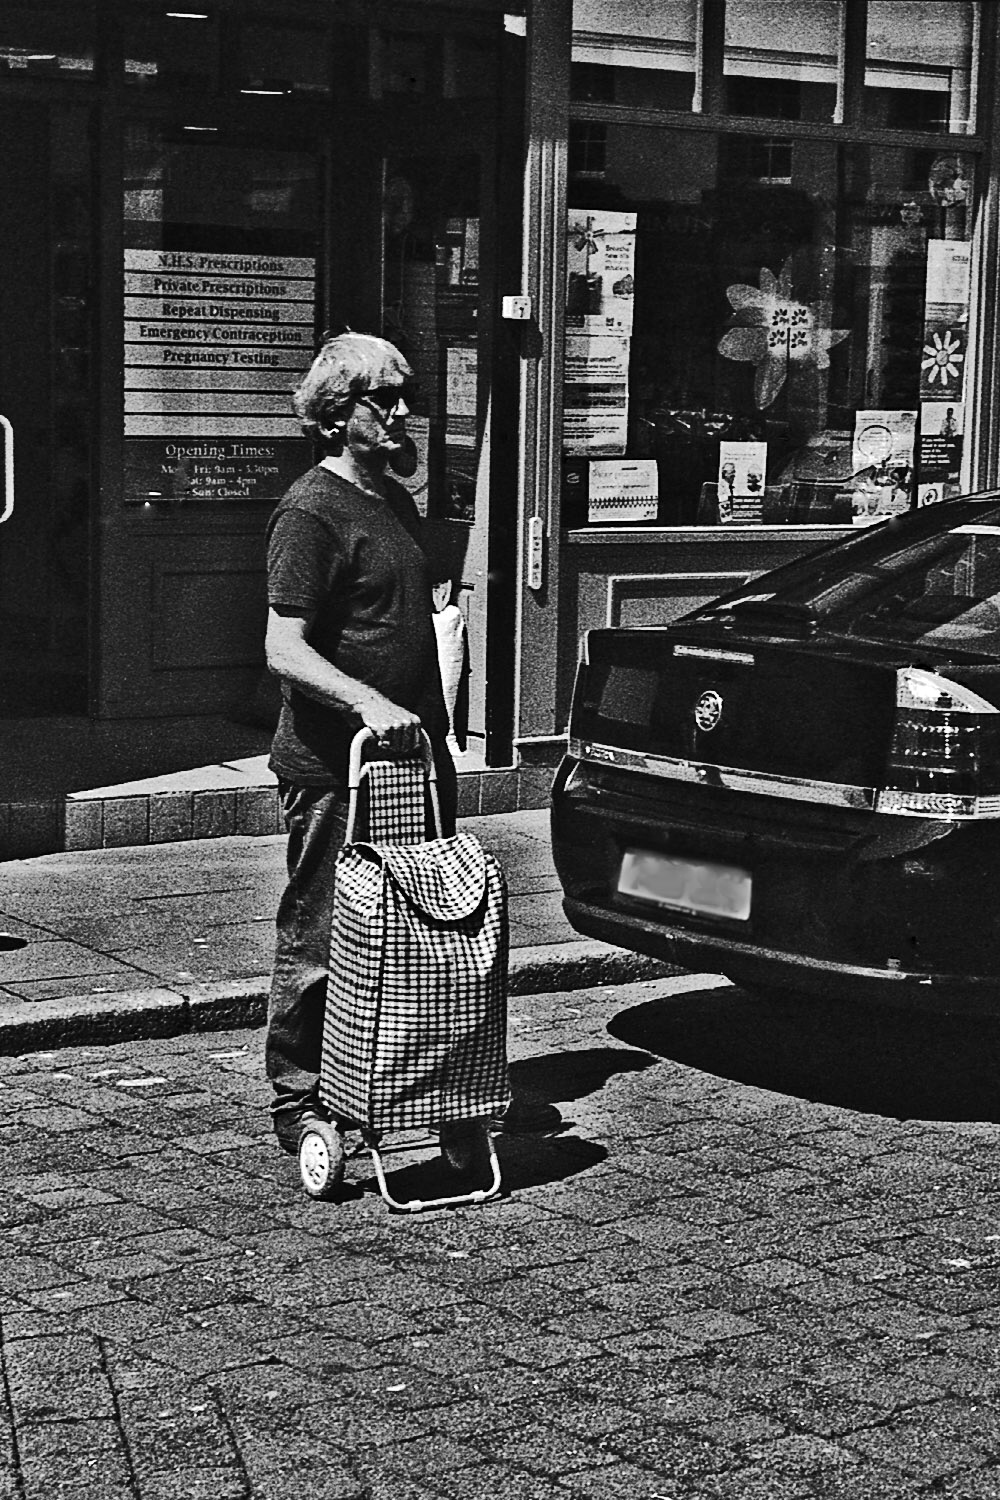 man with tartan trolley whitehaven street photography uk photographer kevin shelley prints for sale leica m2 jupiter 8 50 f2